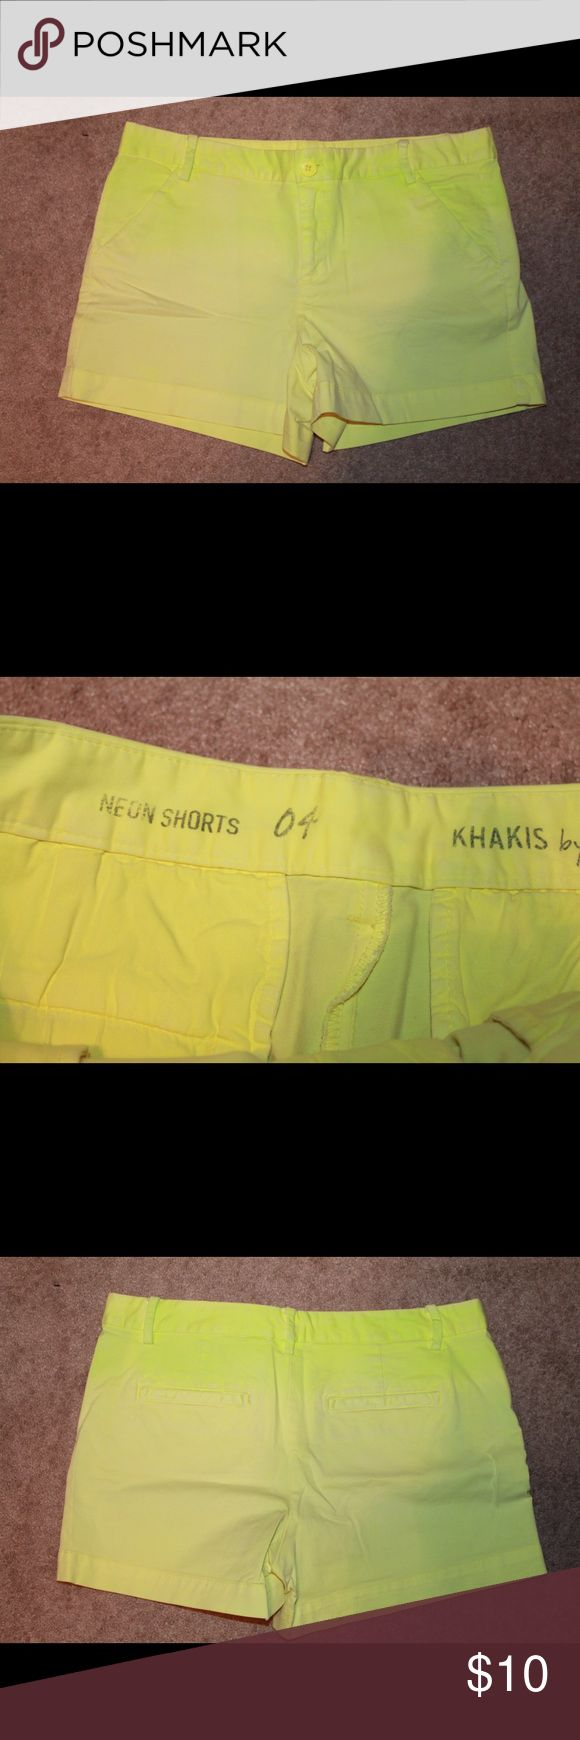 GAP women's size 4 neon shorts Great condition. GAP women's size 4. Neon yellow khakis. Darker at the top and fade out to lighter towards the bottom. GAP Shorts